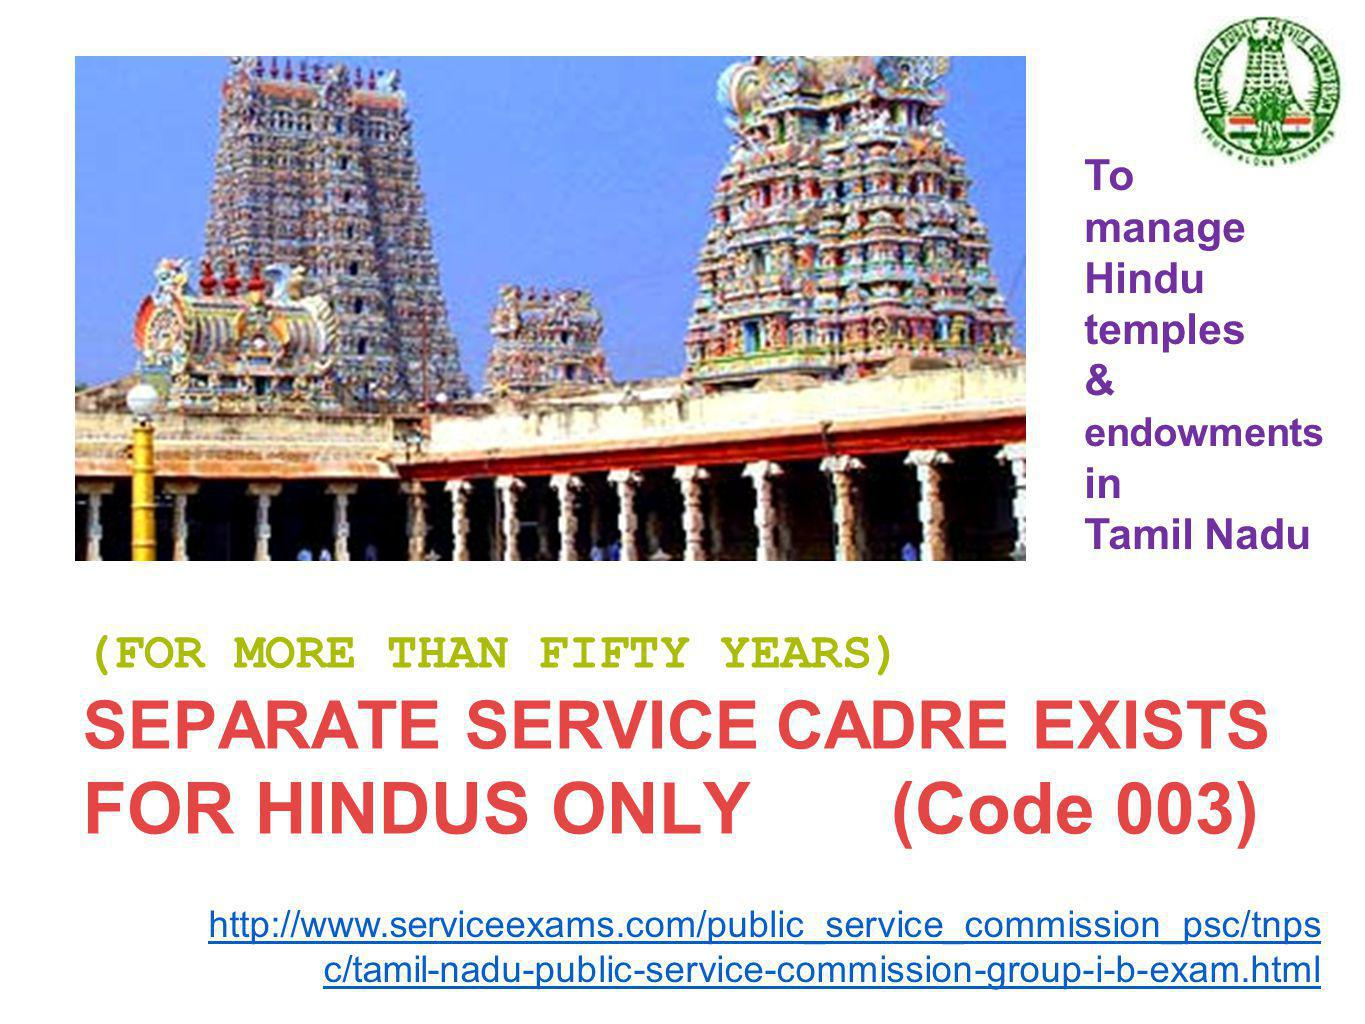 (FOR MORE THAN FIFTY YEARS) SEPARATE SERVICE CADRE EXISTS FOR HINDUS ONLY (Code 003) To manage Hindu temples & endowments in Tamil Nadu http://www.serviceexams.com/public_service_commission_psc/tnps c/tamil-nadu-public-service-commission-group-i-b-exam.html